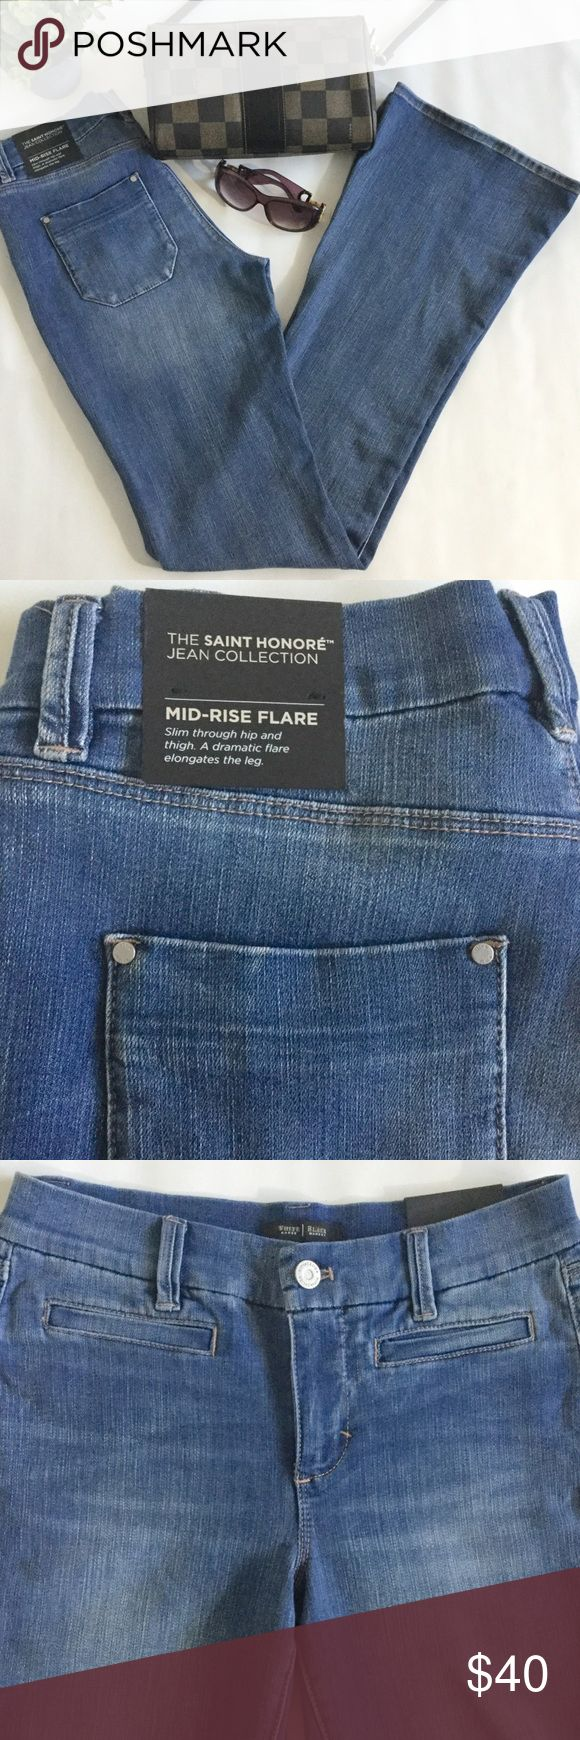 """WHBM Mid Rise Flare Jeans Size 2 Long.  Measures about 14.5"""" across the waistband 8.5"""" front rise 35.5"""" inseam 21.5"""" leg opening.  70% Cotton 28% Polyester 2% Spandex.  Wide Flare jeans with a mid rise.  It fits slim through the hip and thigh.  No trades. White House Black Market Jeans Flare & Wide Leg"""